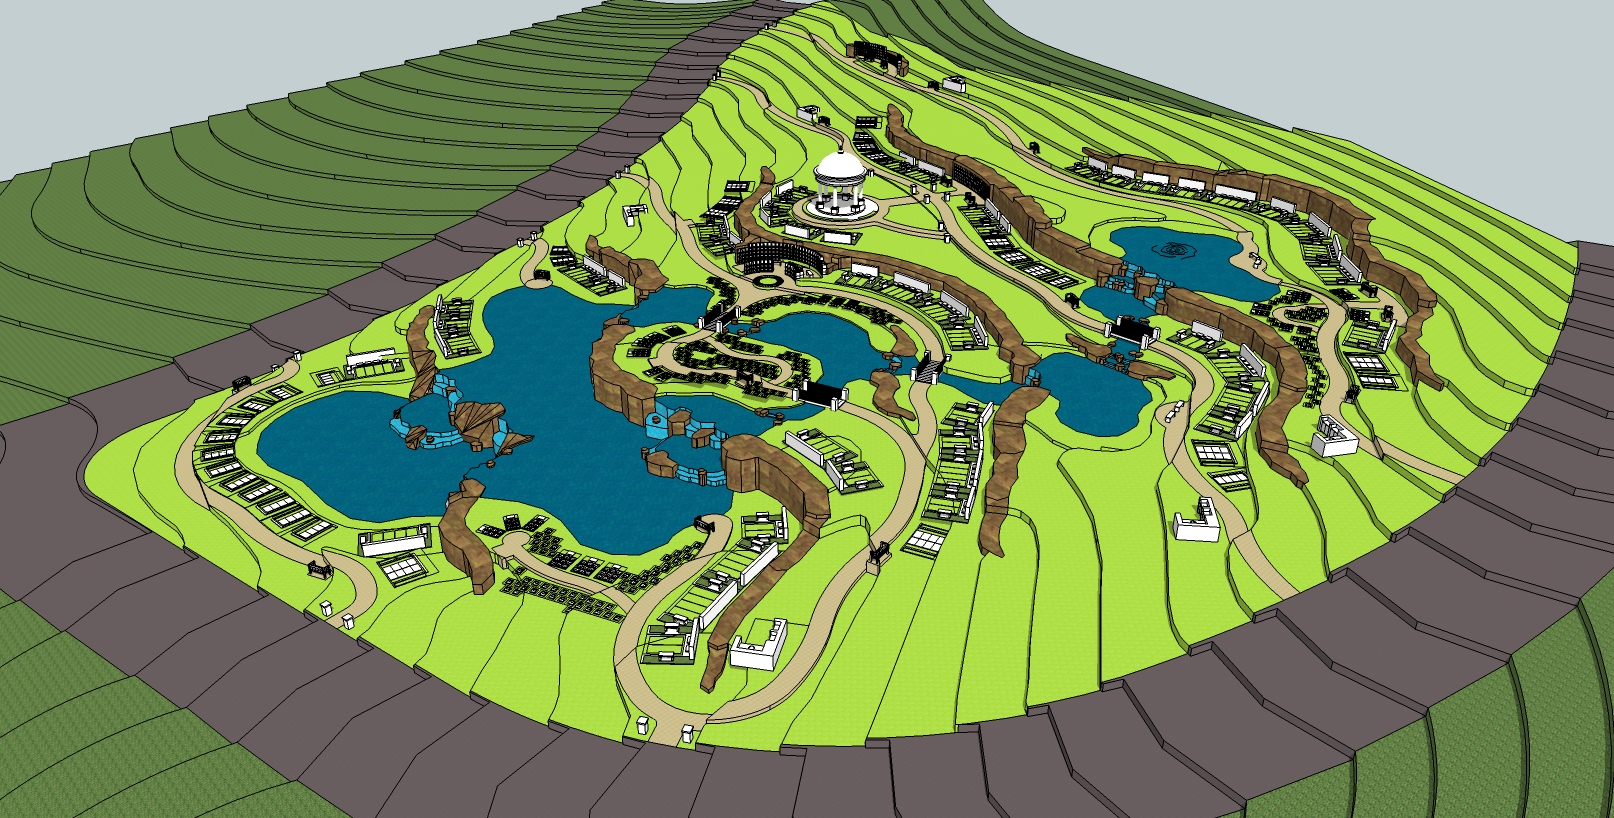 Forest Lawn Cemetery_Site model_3D_10-8-13 - ds3.jpg